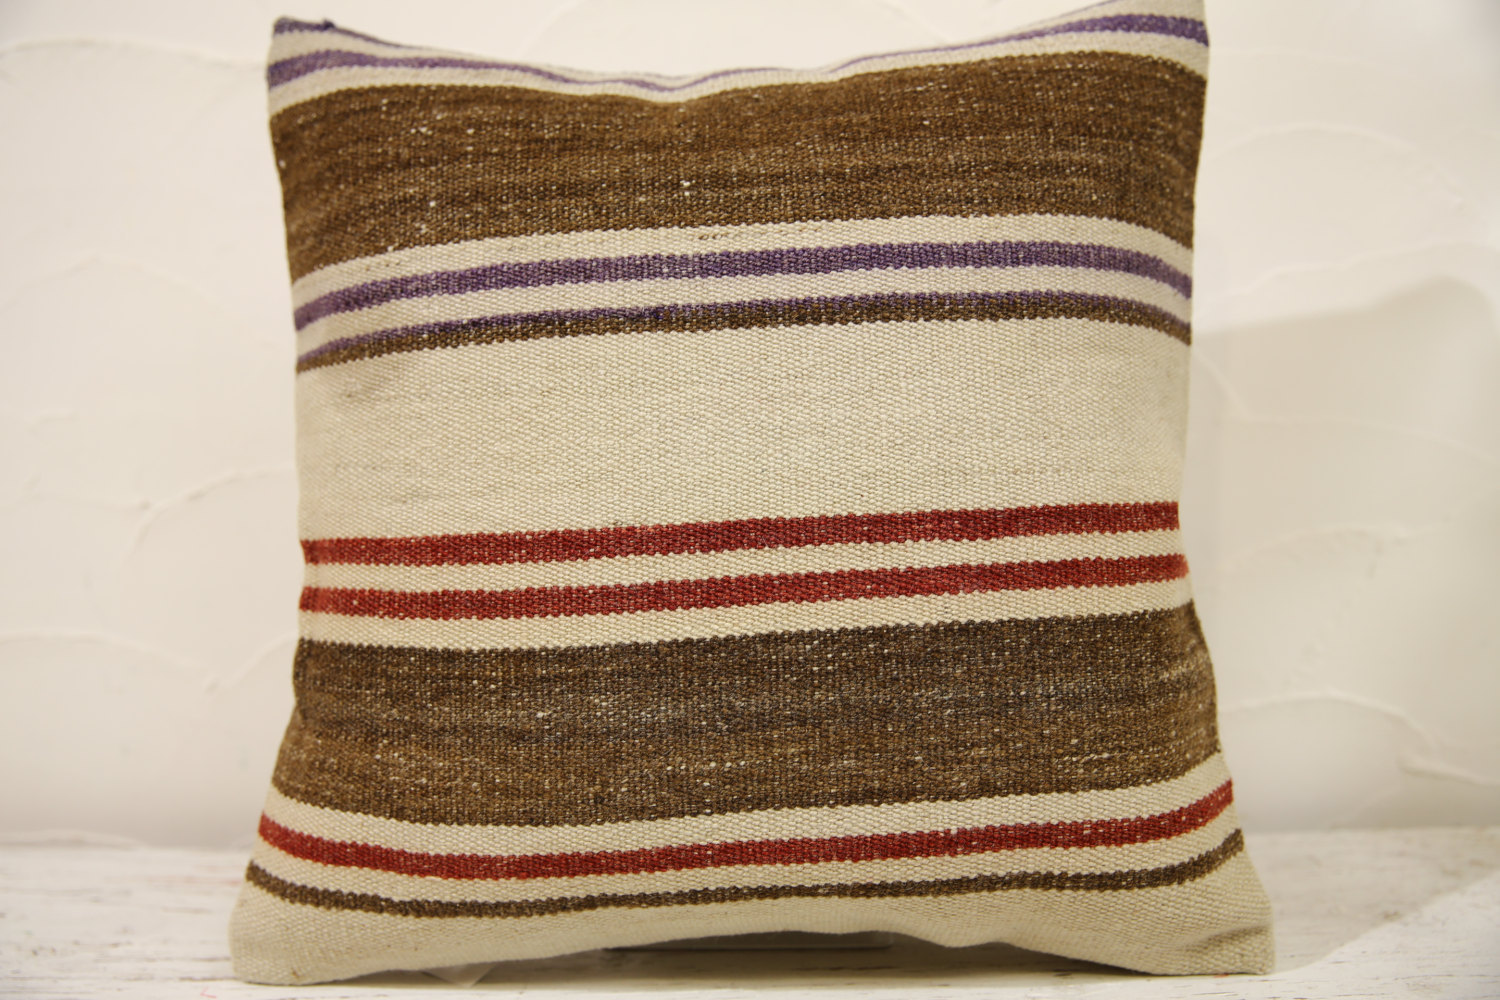 Kilim Pillows | 16x16 | Decorative Pillows | 856 | Accent Pillows,turkish pillow